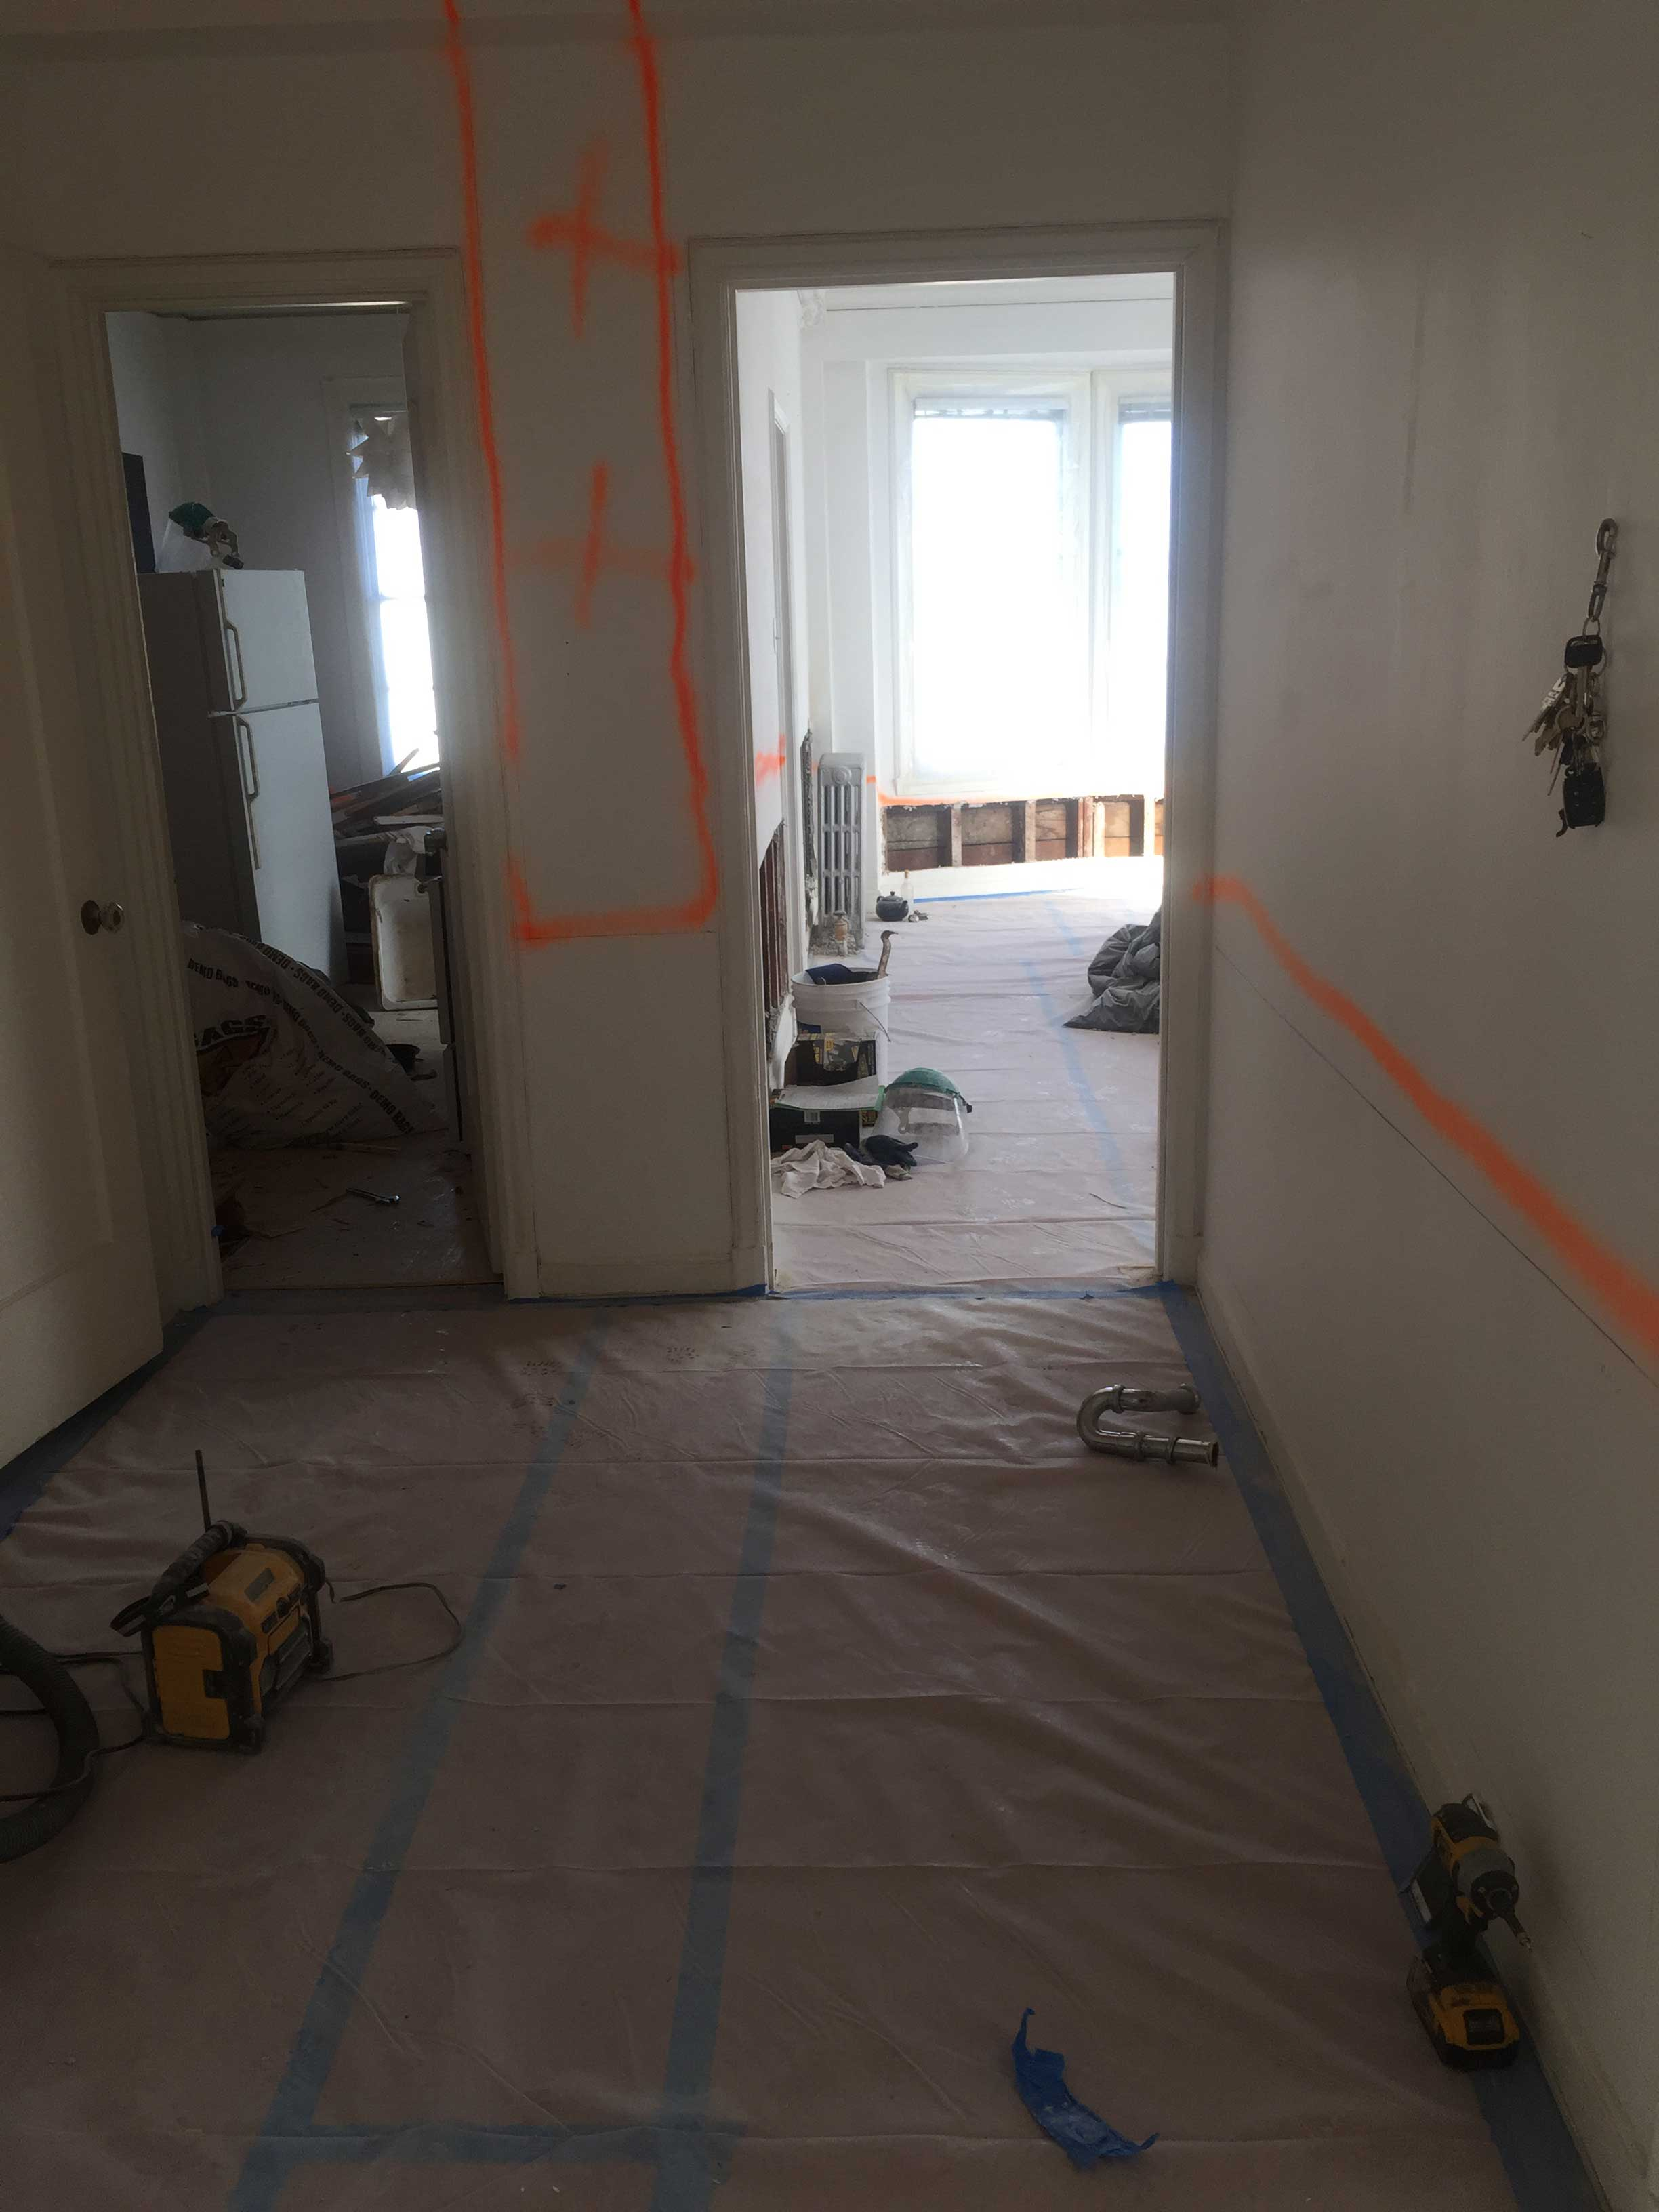 Markings and Preparation for Lead Remediation